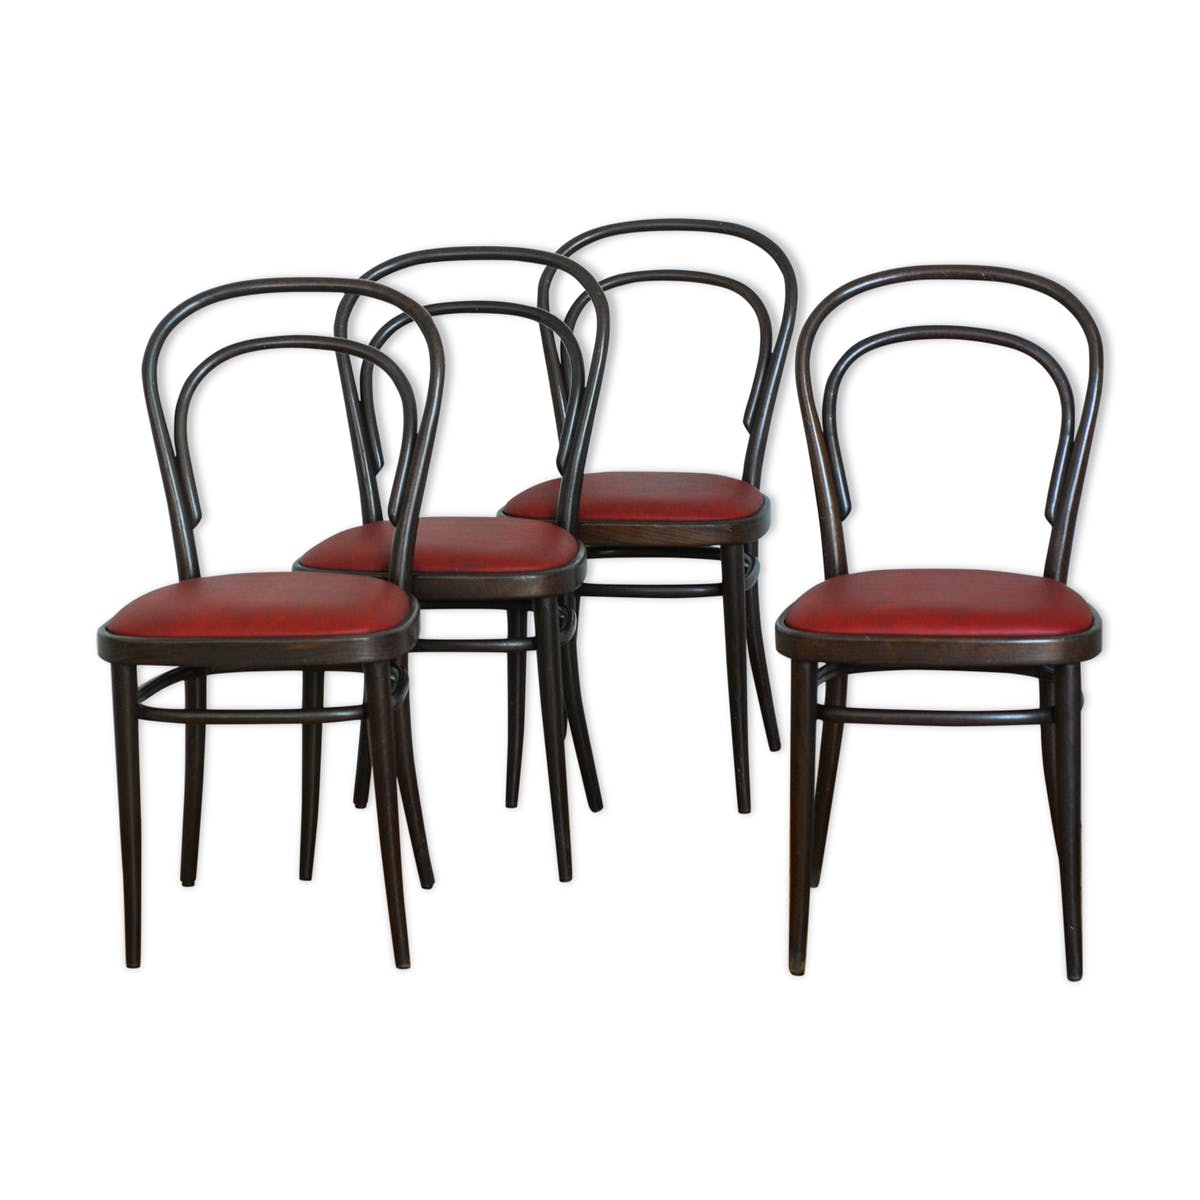 lot de 4 chaises bistrot thonet mes petites puces. Black Bedroom Furniture Sets. Home Design Ideas